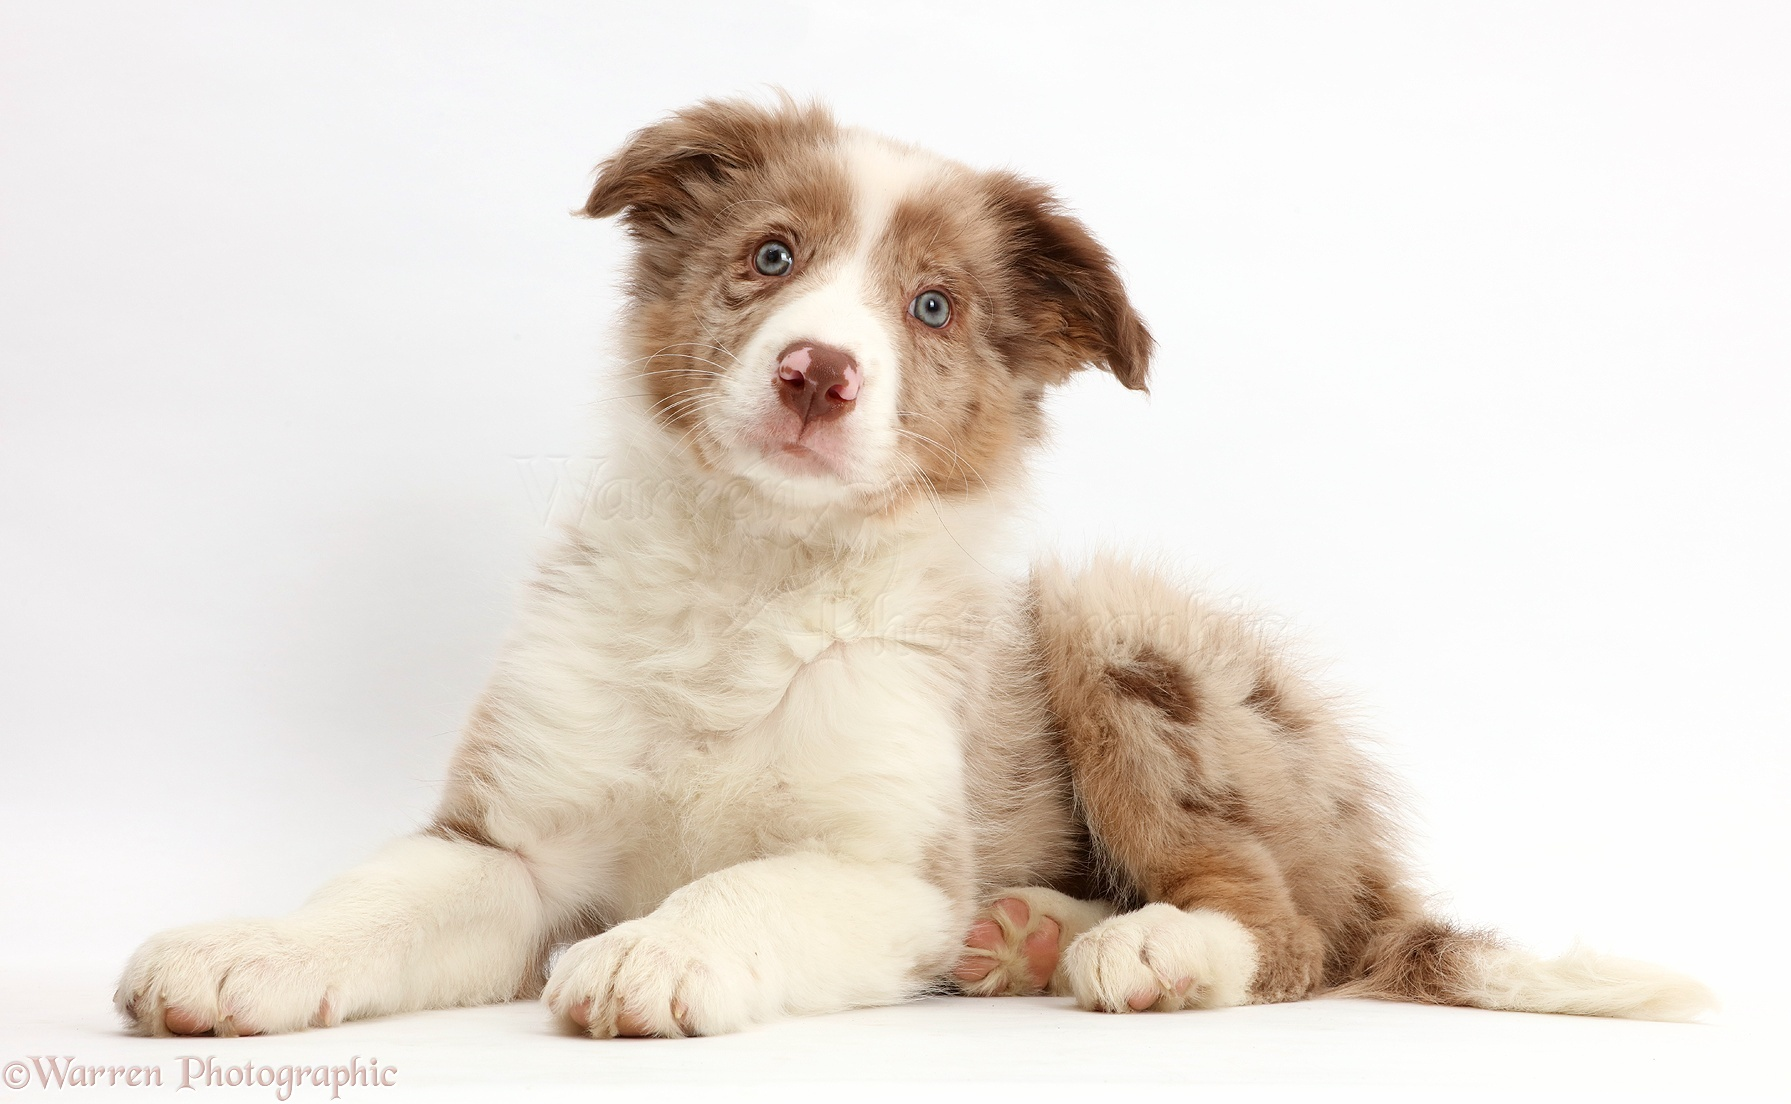 Dog Red Merle Border Collie Puppy Photo Wp44154